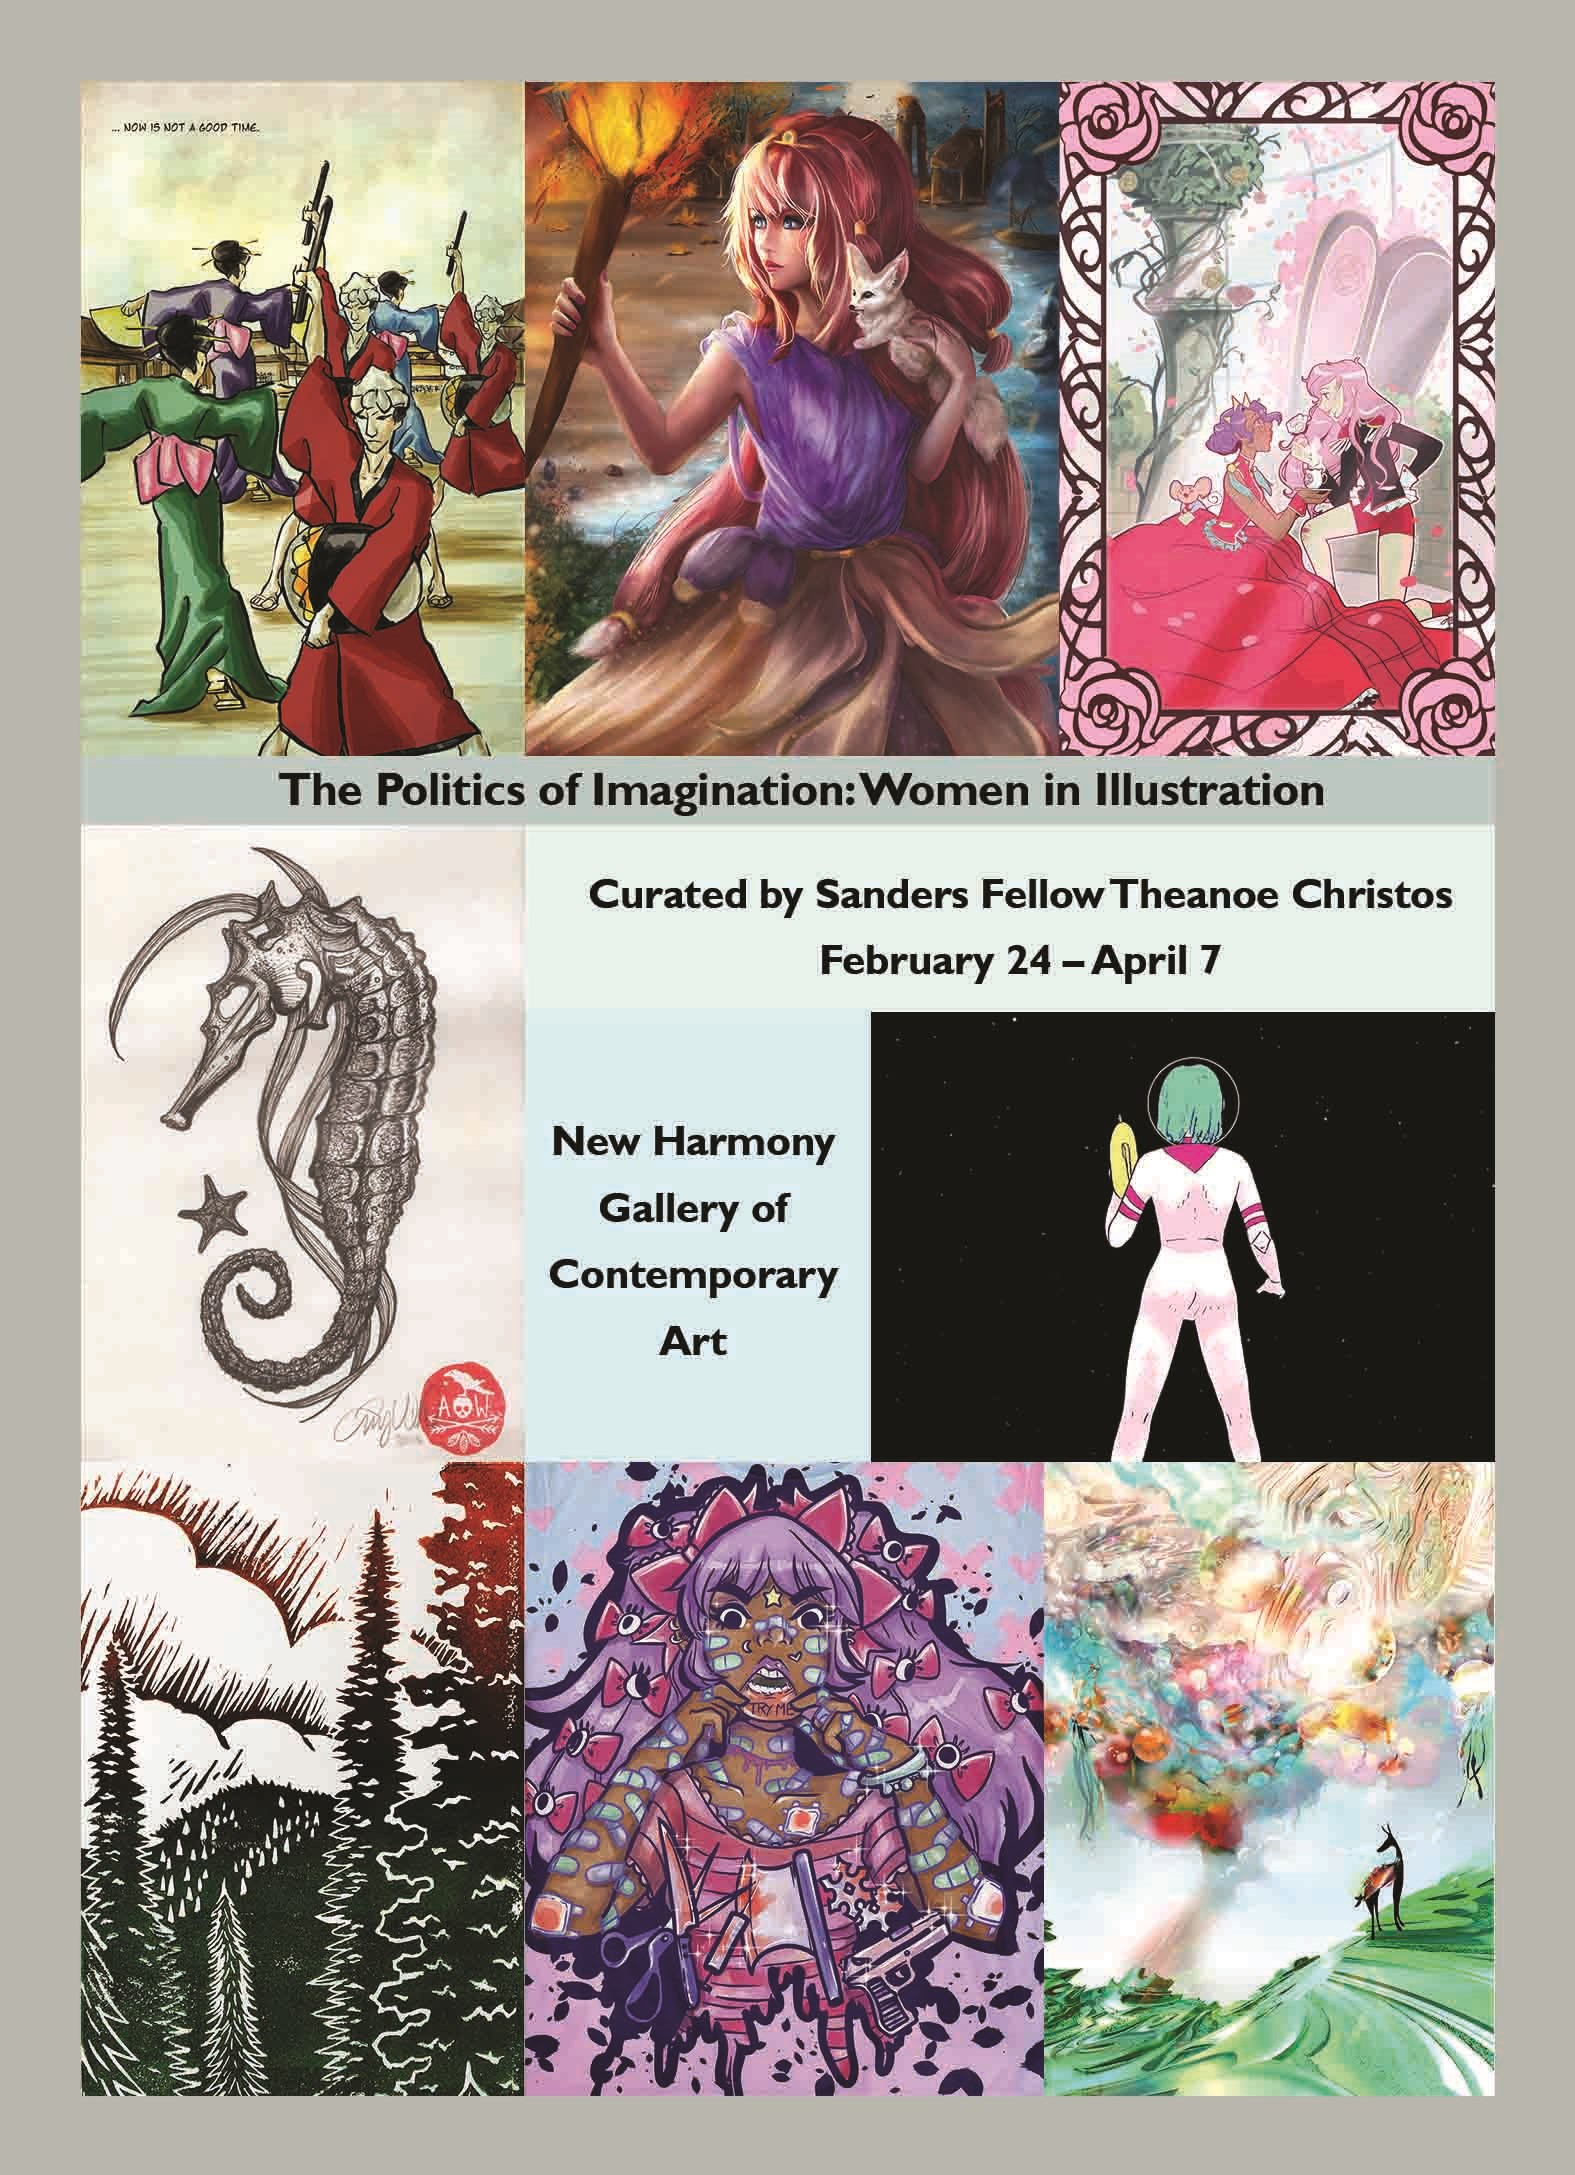 the politics of imagination women in illustration curated by sanders fellow theanoe christos